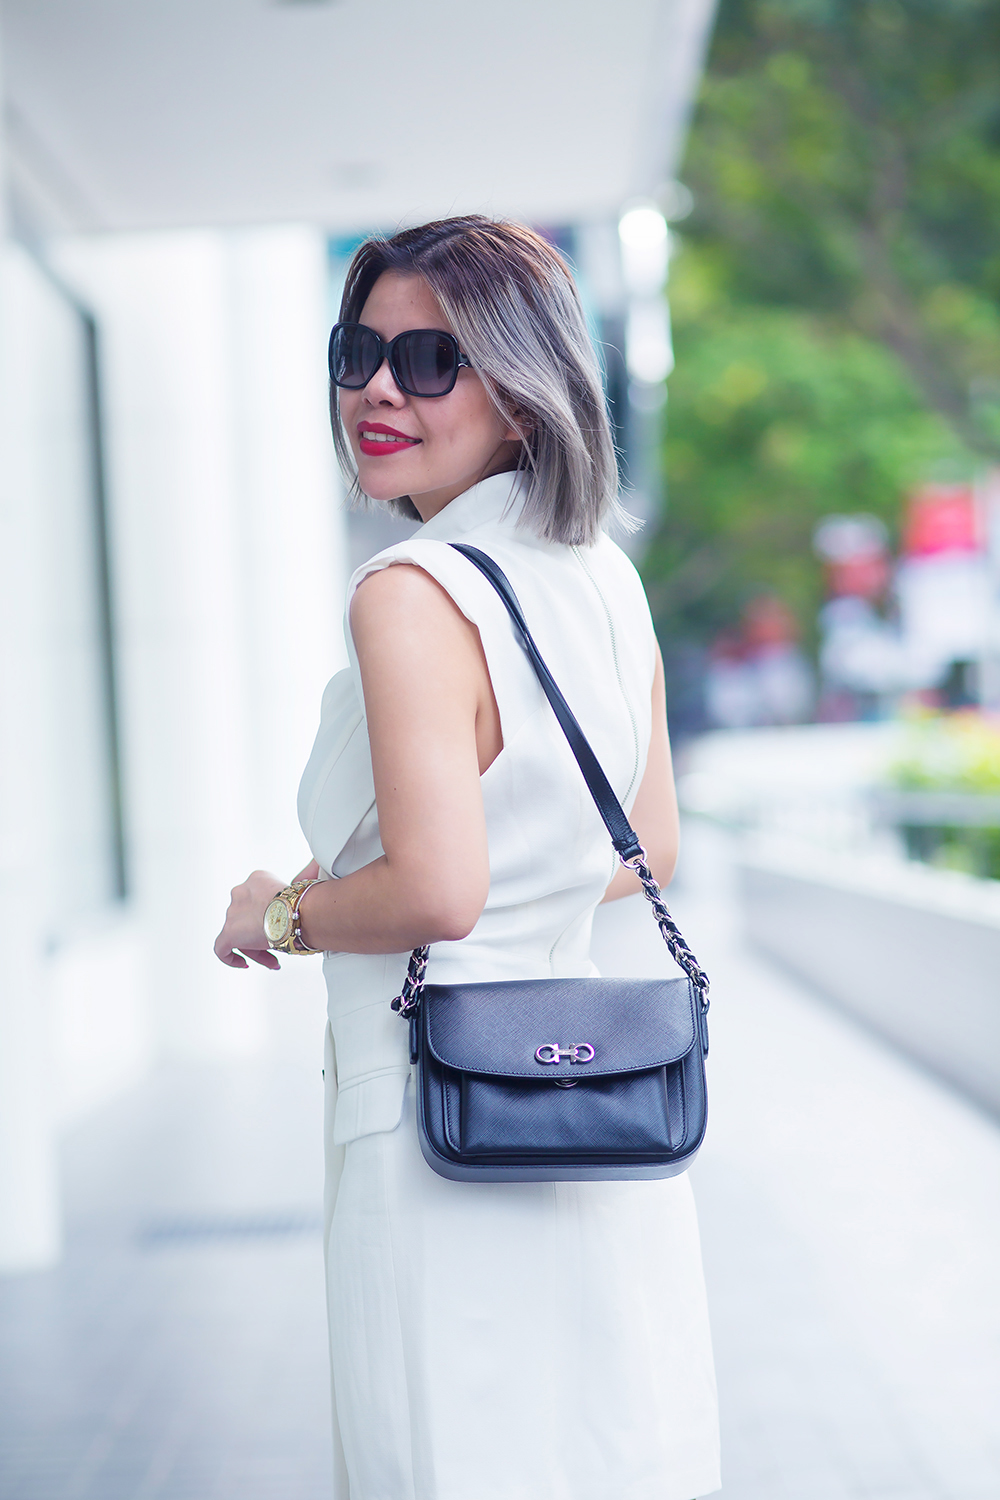 Crystal Phuong x Revolve Clothing- Black and white